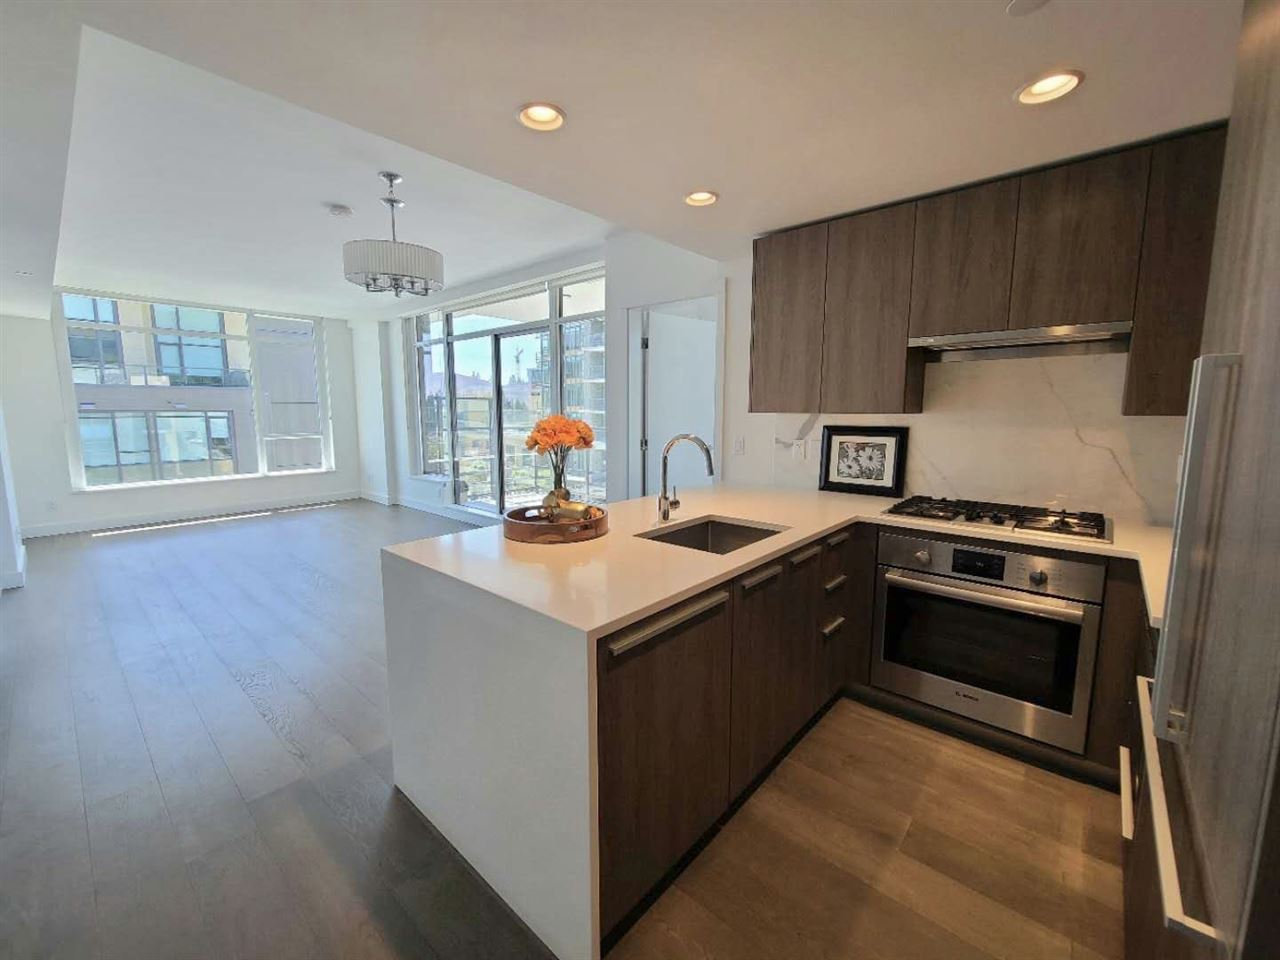 402 1295 CONIFER STREET - Lynn Valley Apartment/Condo for sale, 2 Bedrooms (R2464712) - #4